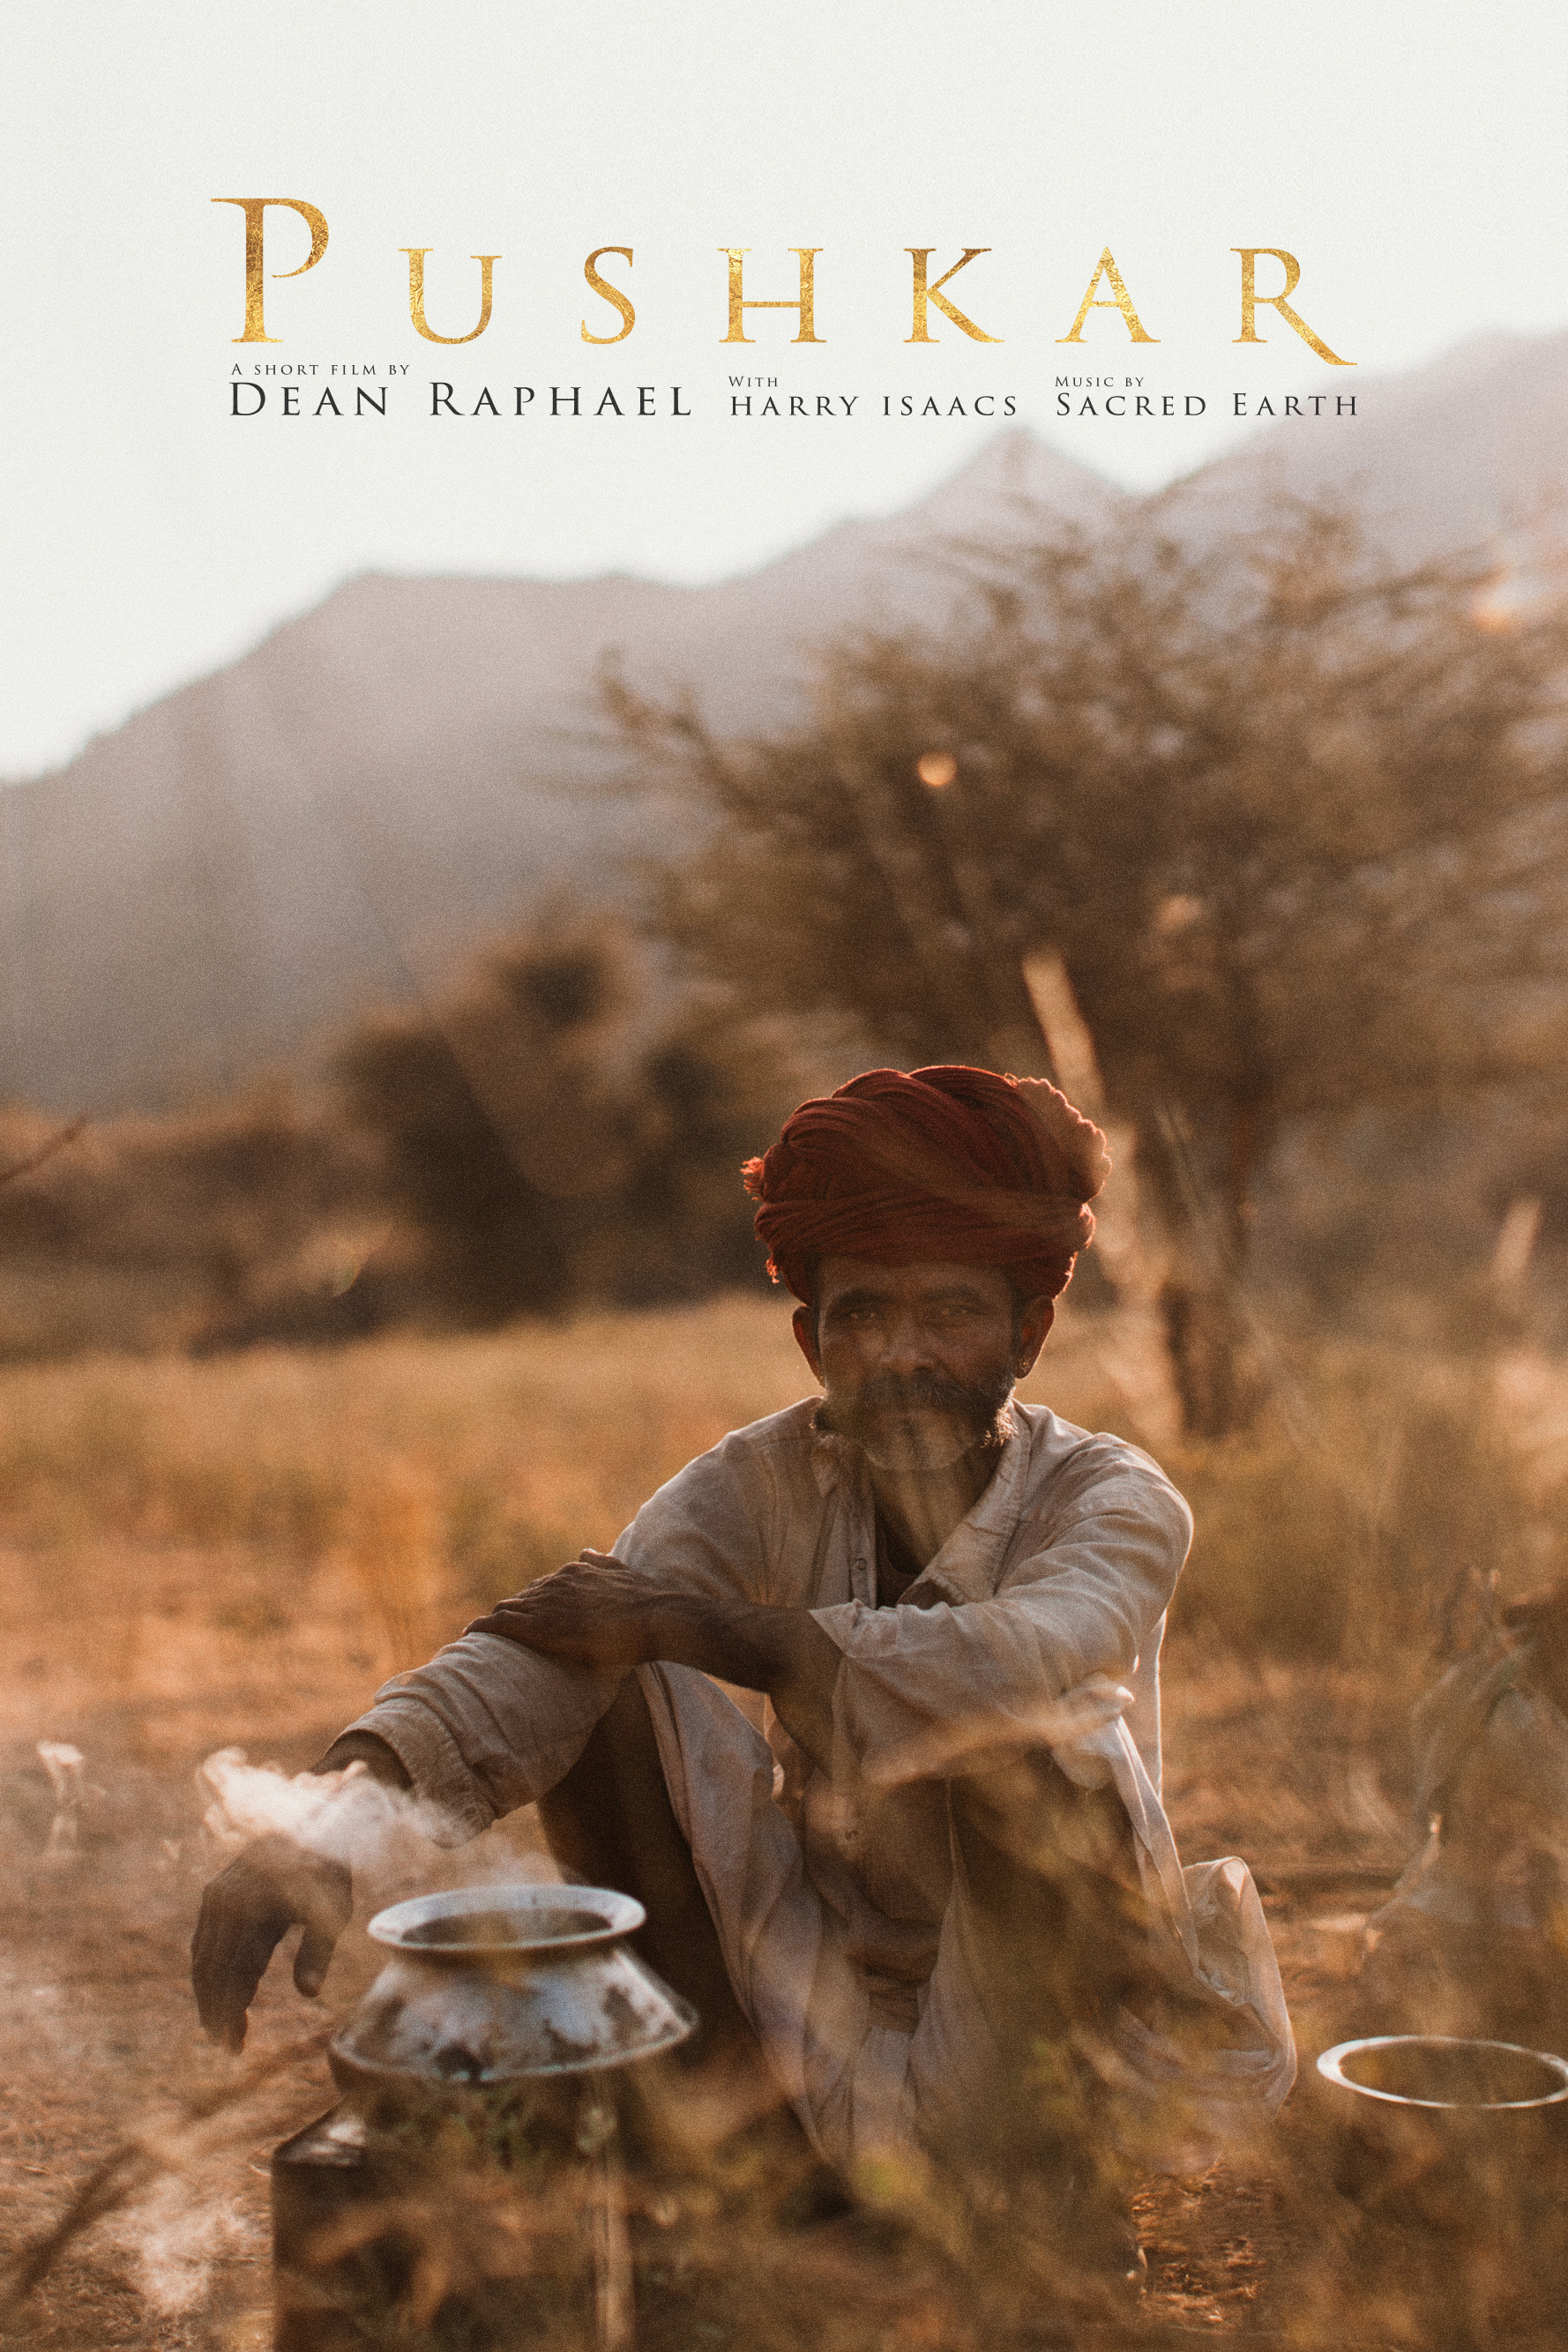 PUSHKAR   by Dean Raphael  | 11:36 | Touched by the warmth in the eyes, connected by the love felt in the hearts and moved by the purity of the people from Pushkar in Rajasthan, India.